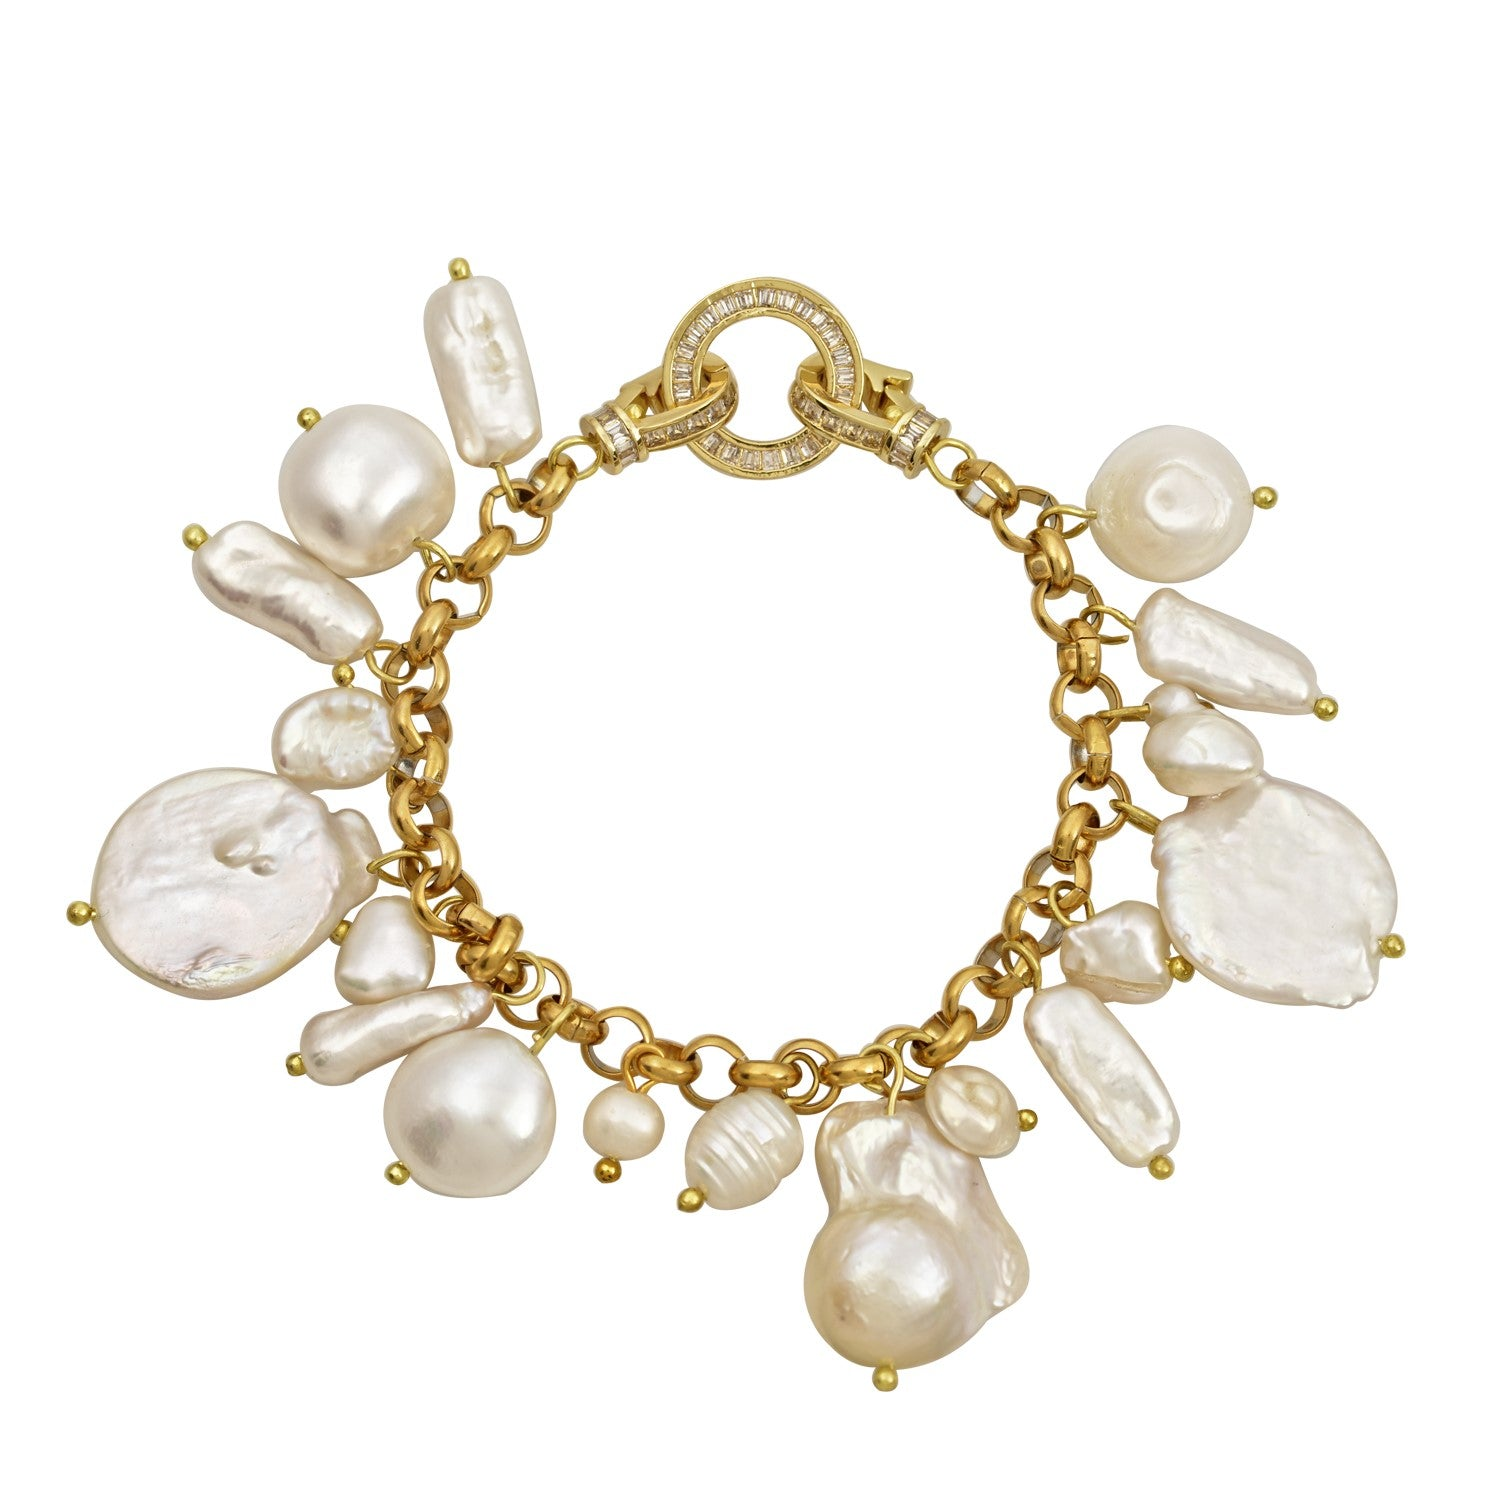 Las Palmas Bracelet-Baroque pearls-chunky gold plated Mayol - Shop with Sparkle & The Sinner